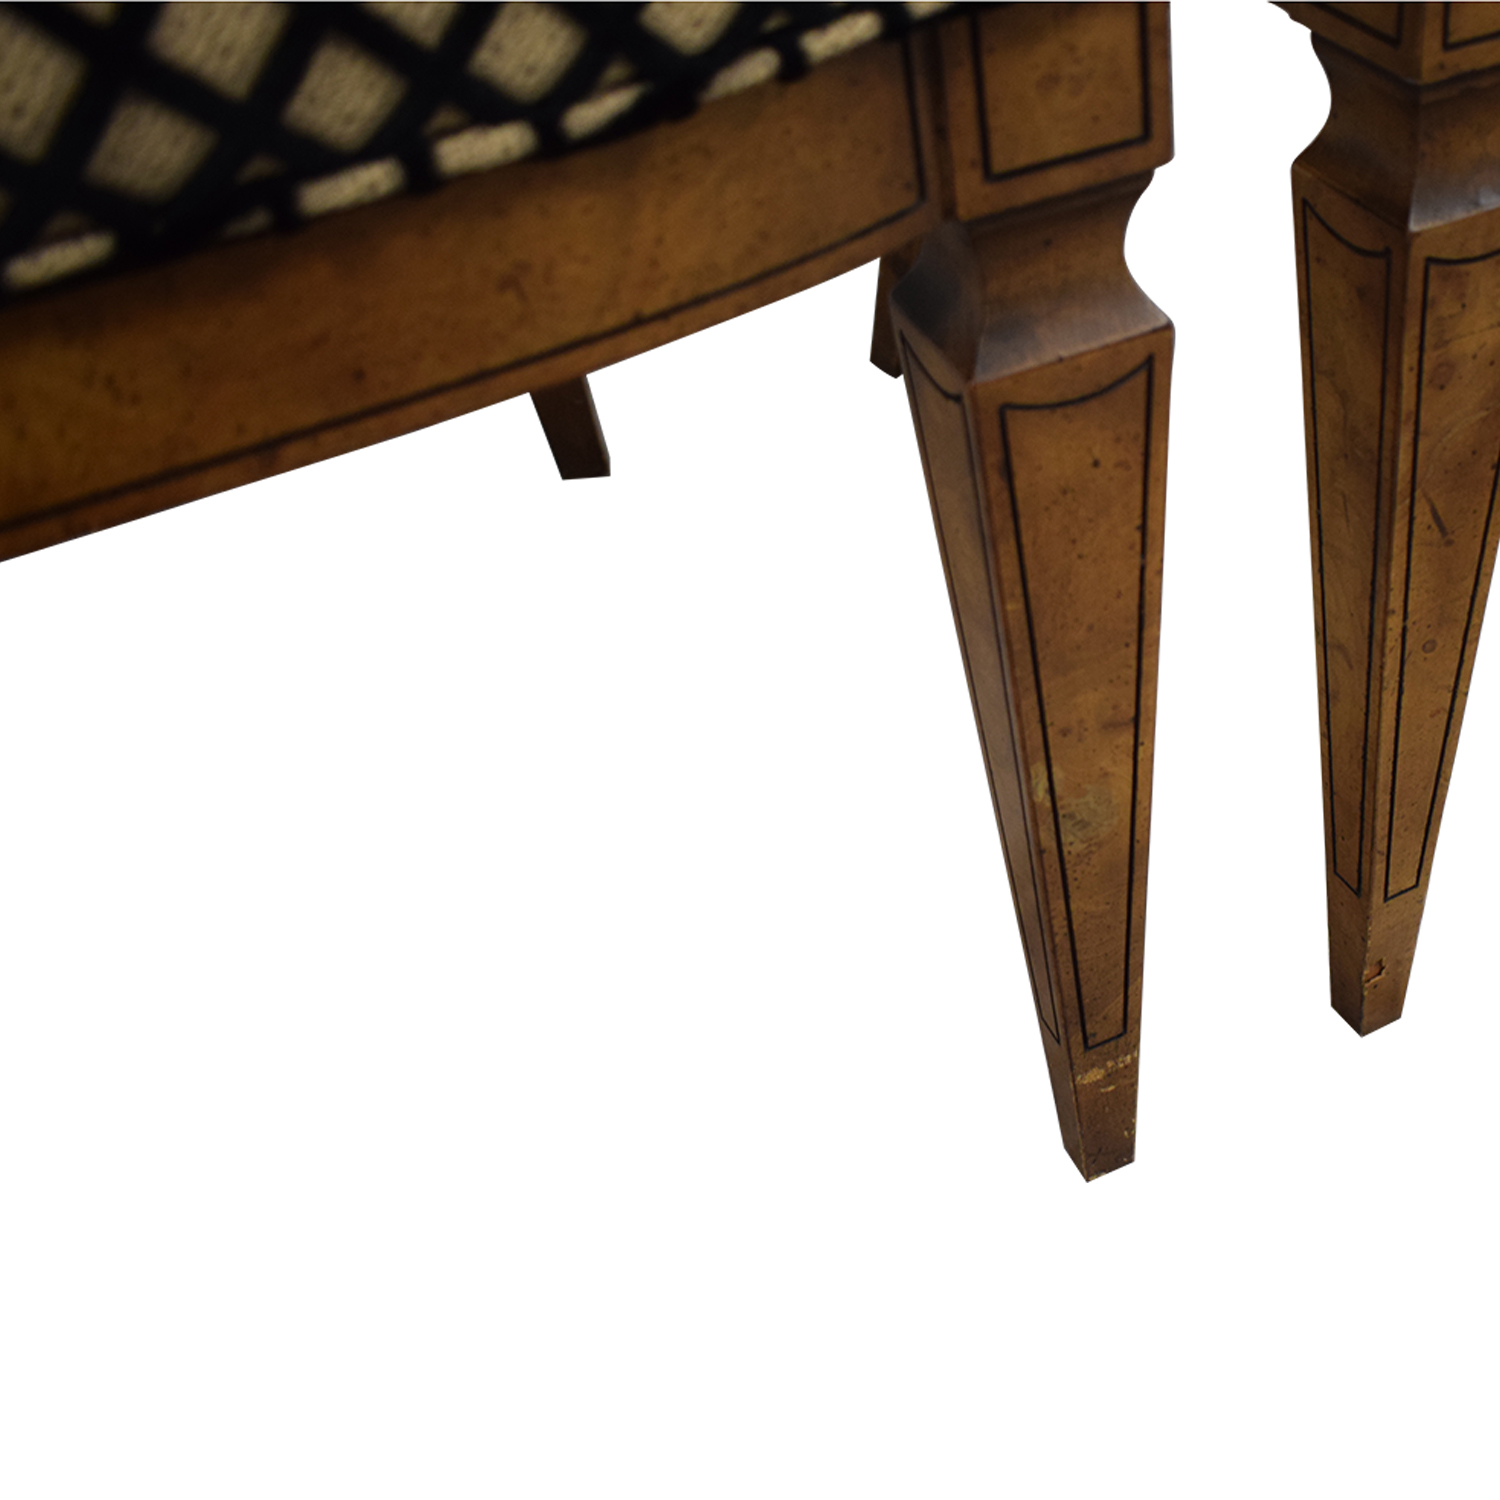 Mastercraft Furniture Patterned Dining Chairs / Chairs